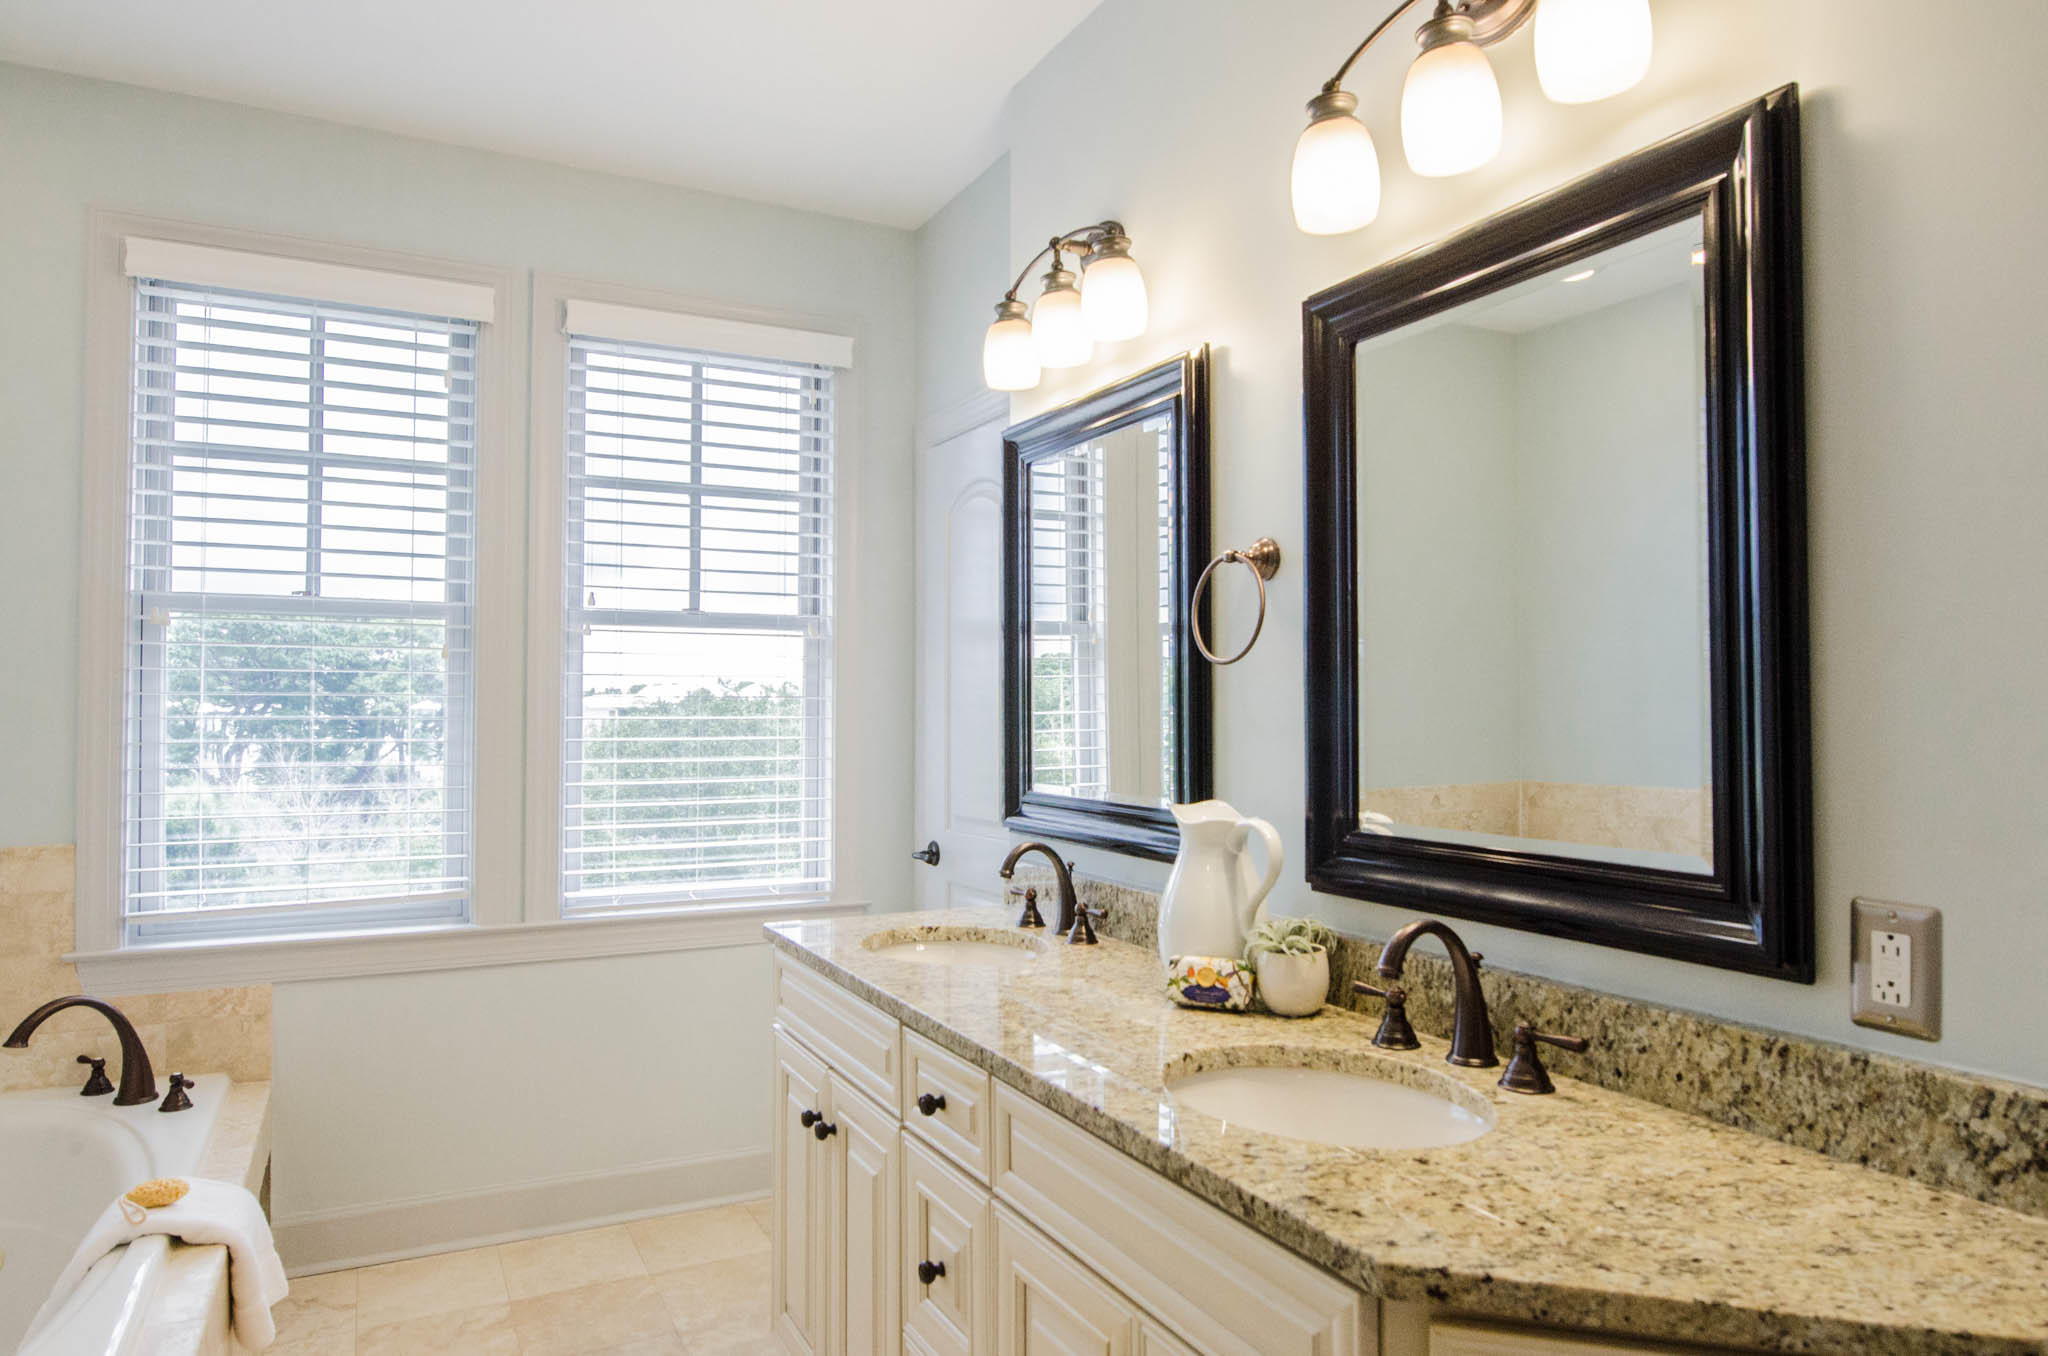 Sawyer's Landing Homes For Sale - 969 Cove Bay, Mount Pleasant, SC - 20